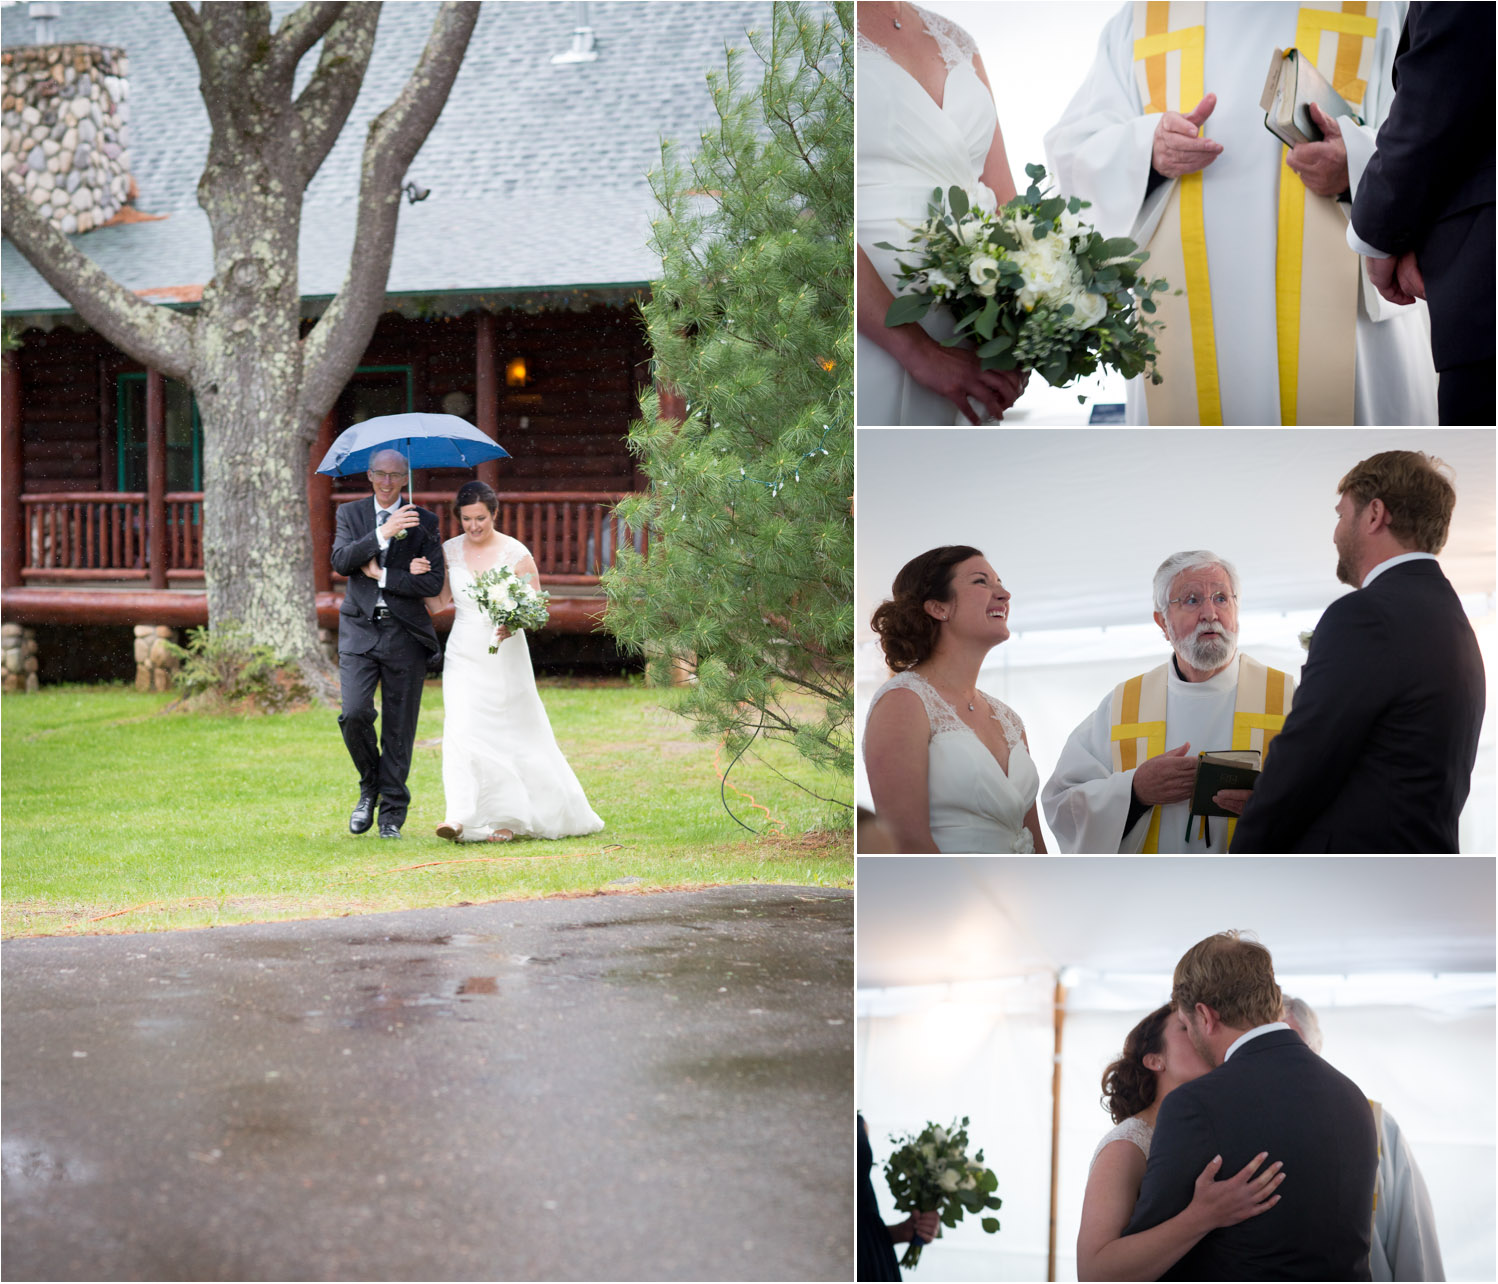 15-rainy-wedding-day-tent-ceremony-back-up-plan-father-of-the-bride-umbrella-first-kiss-mahonen-photography